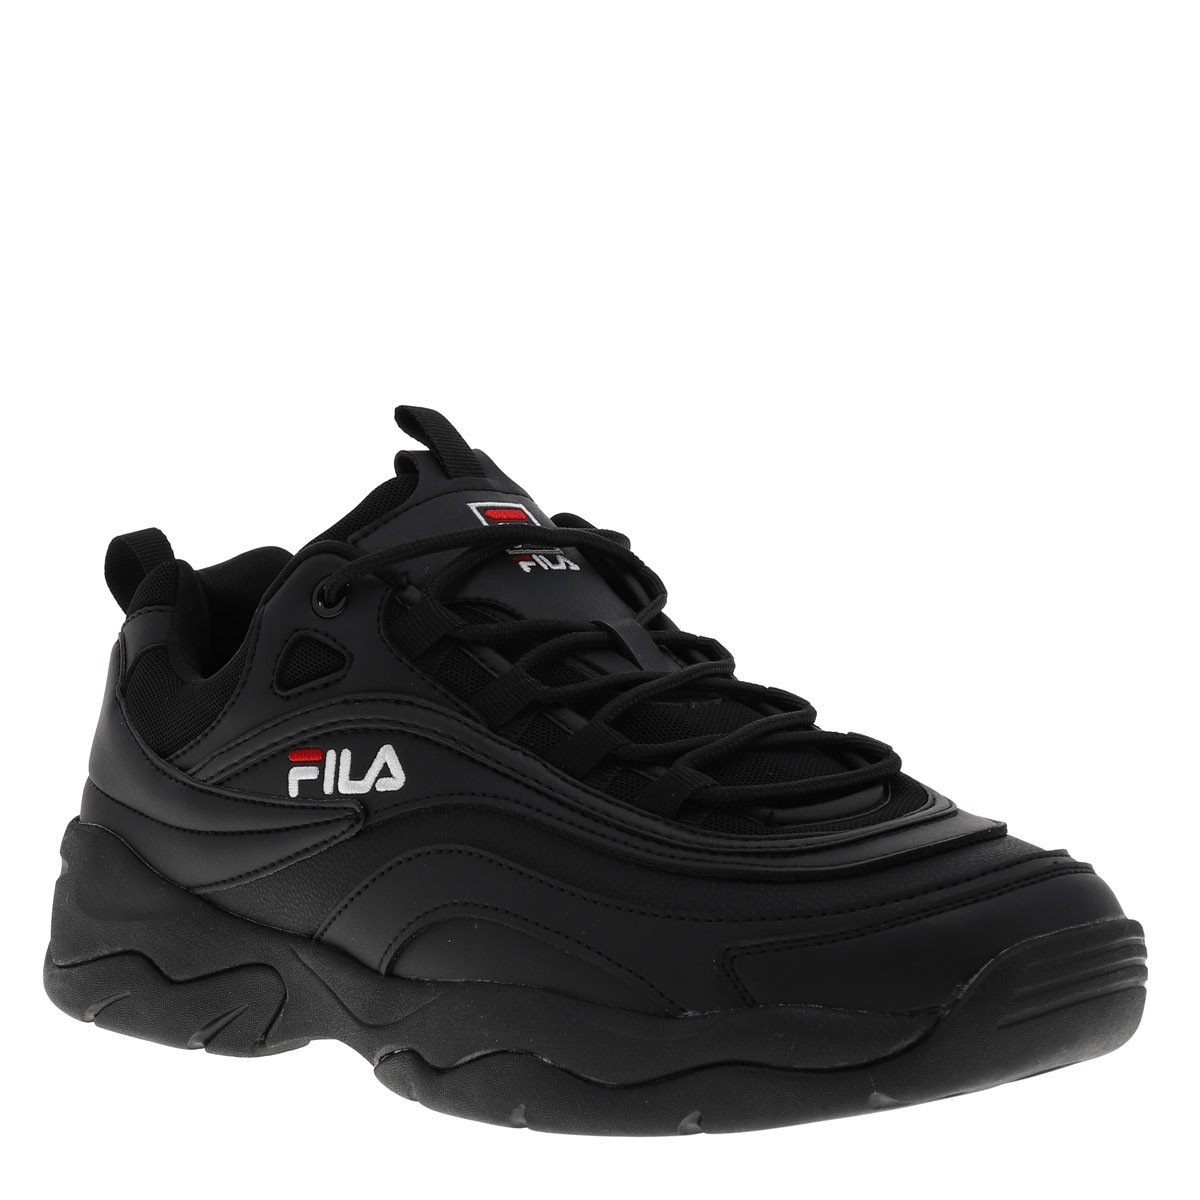 Ray Homme Baskets Low Noir Fila Mode Ccv Yf7bg6Ivy